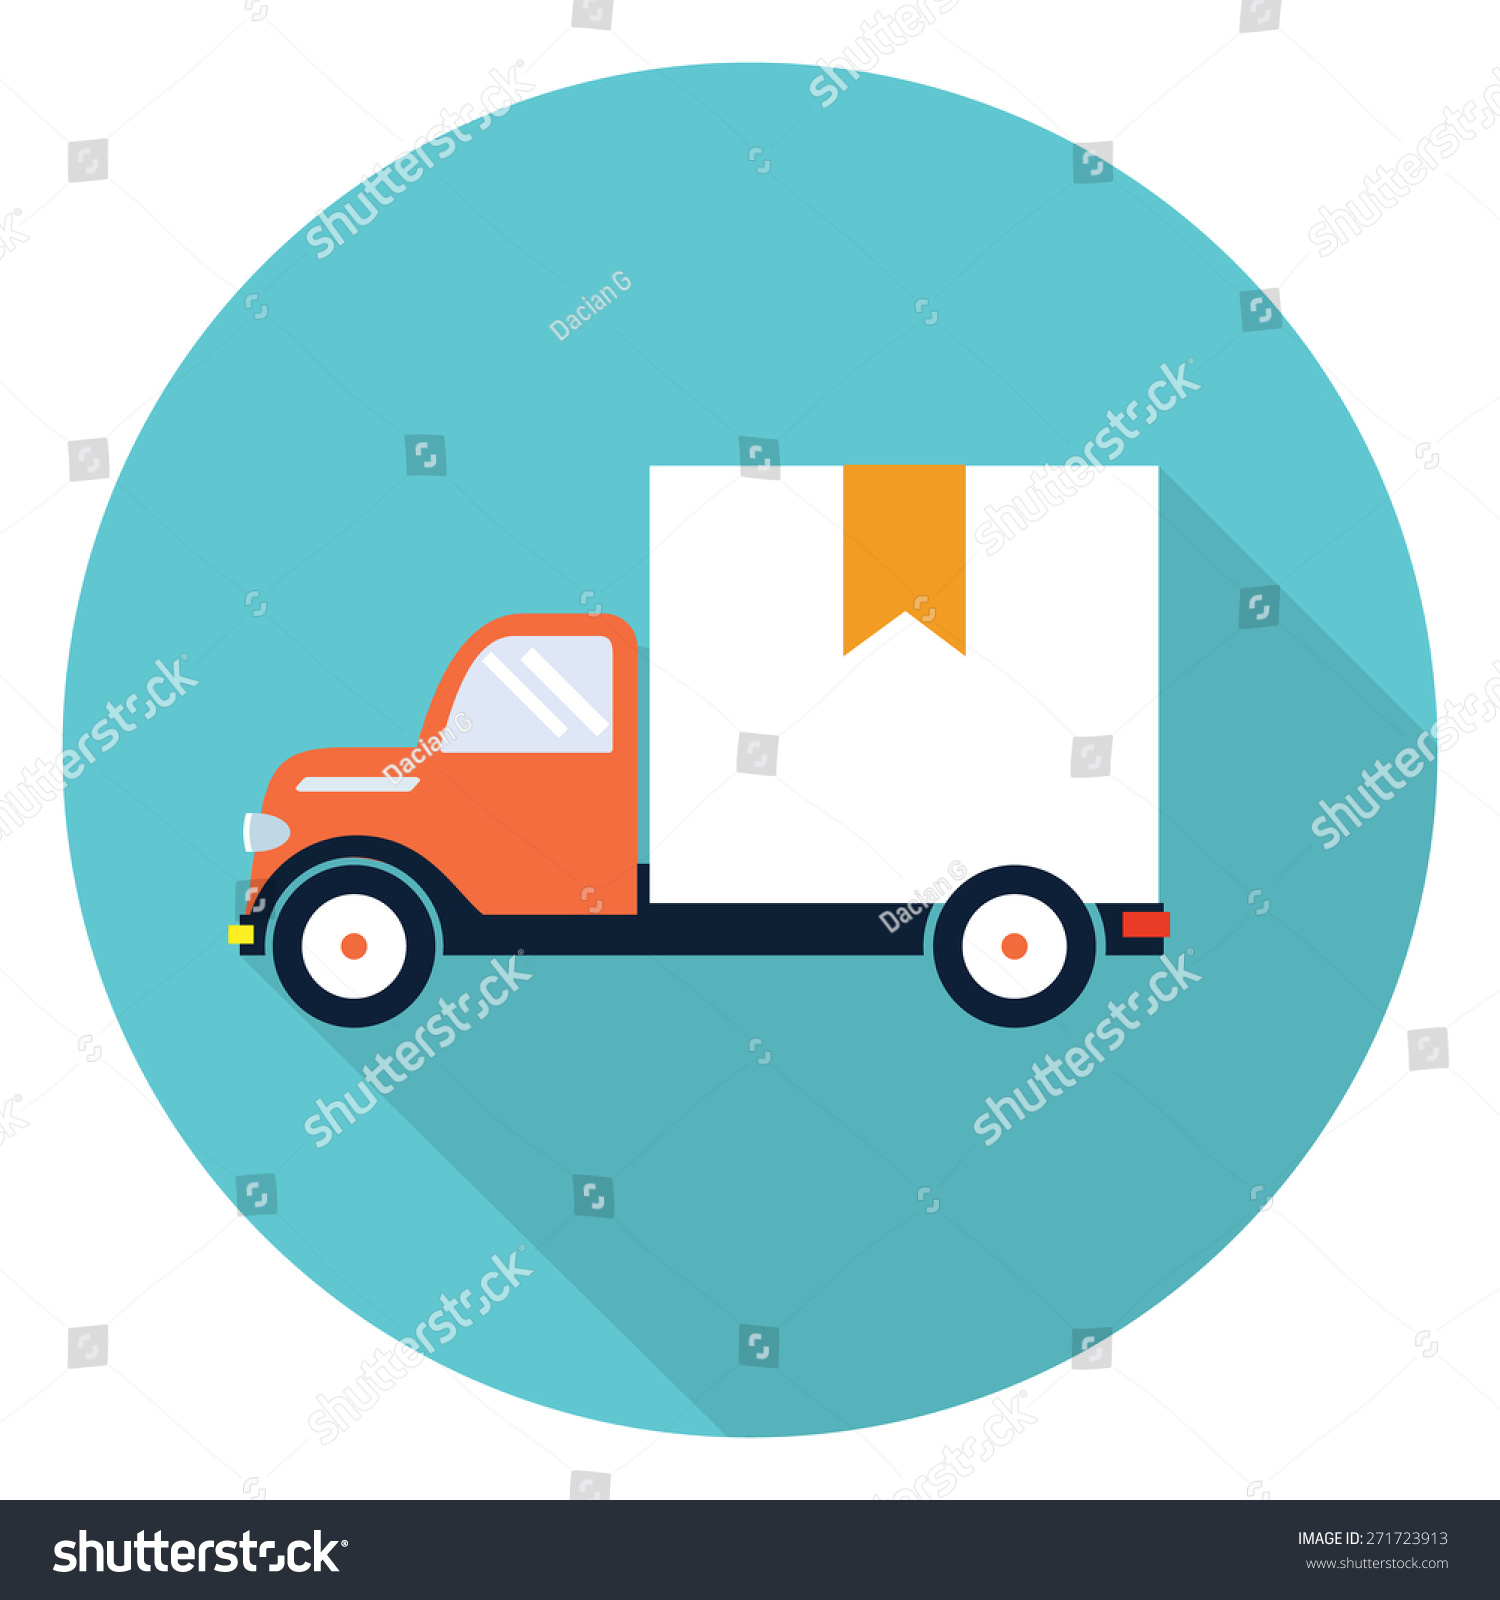 delivery truck icon vector - photo #46